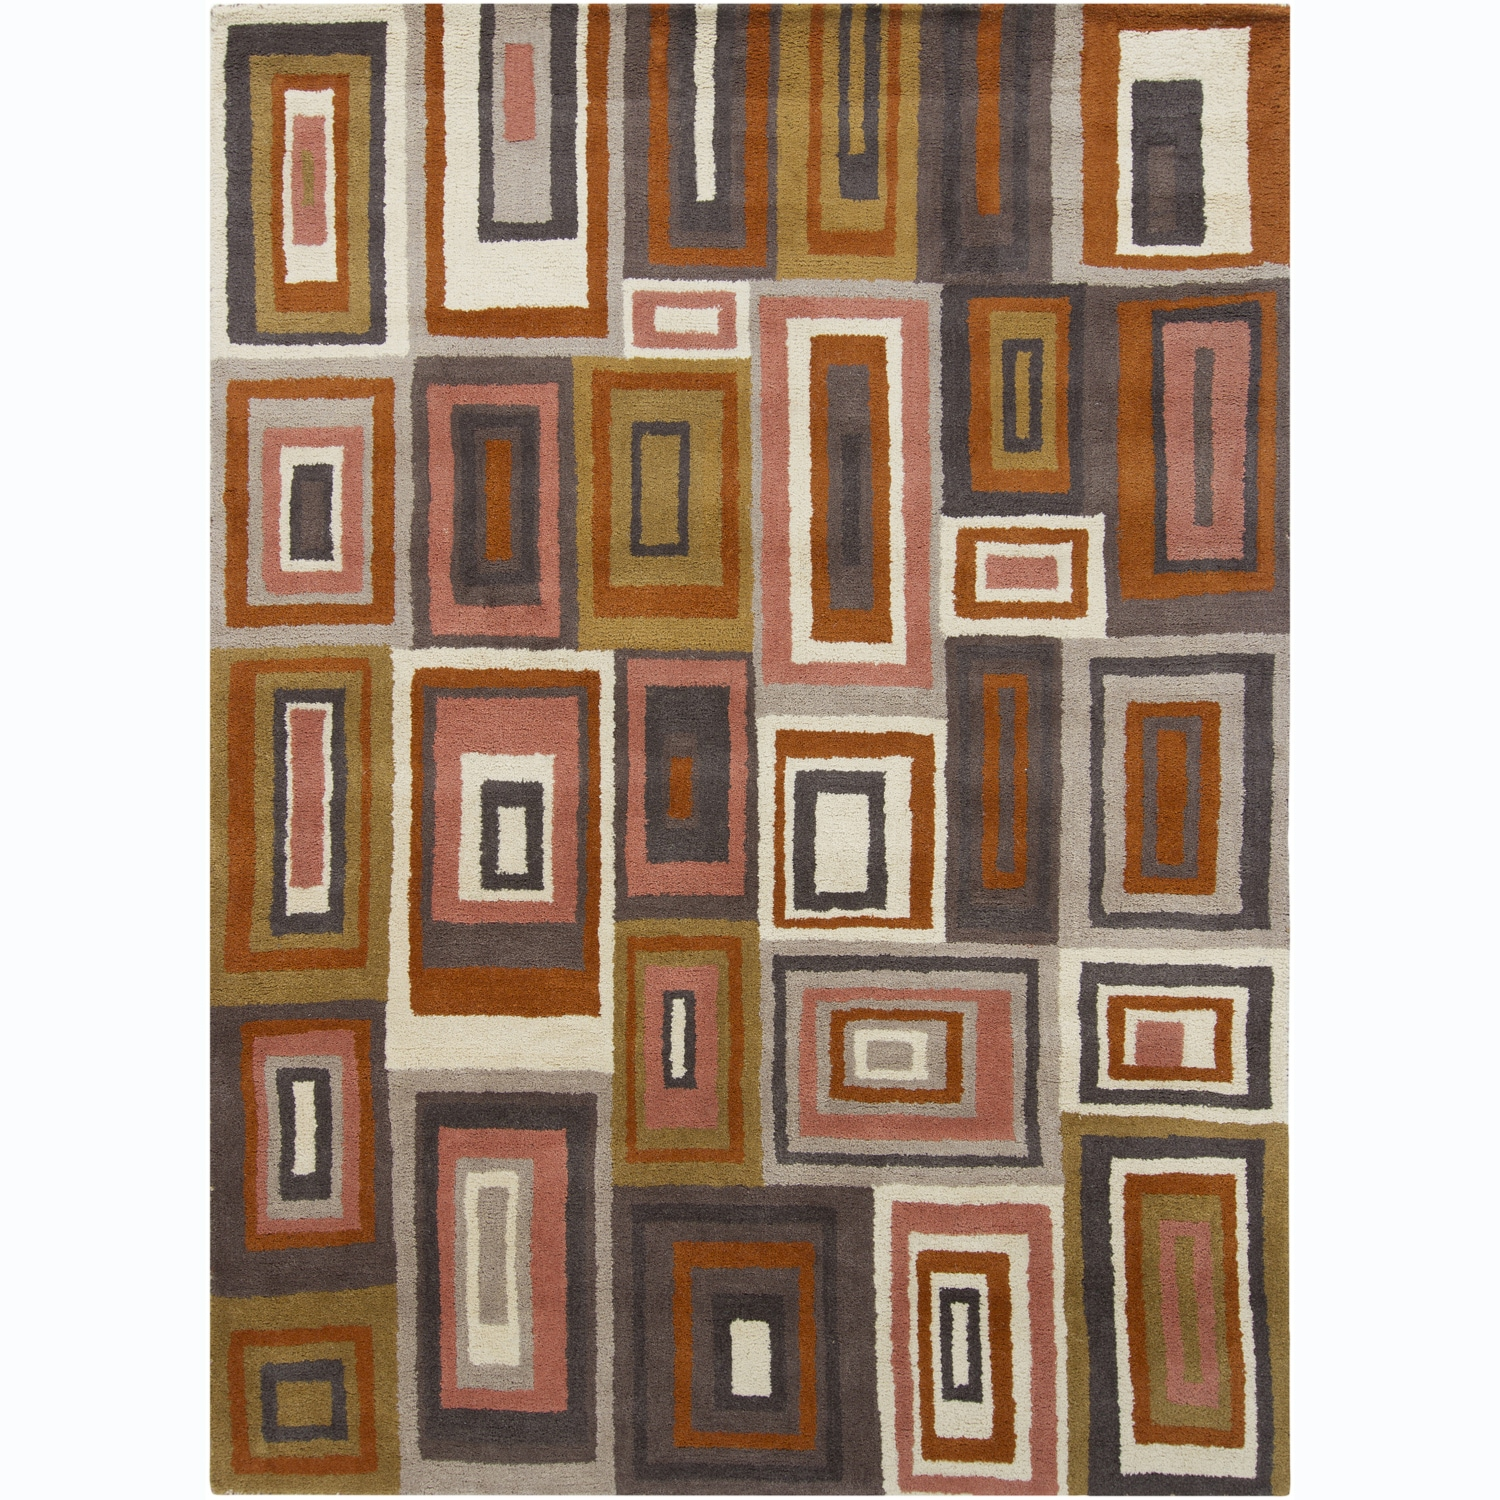 Artist's Loom Hand-tufted Contemporary Geometric Wool Rug (5'x7')